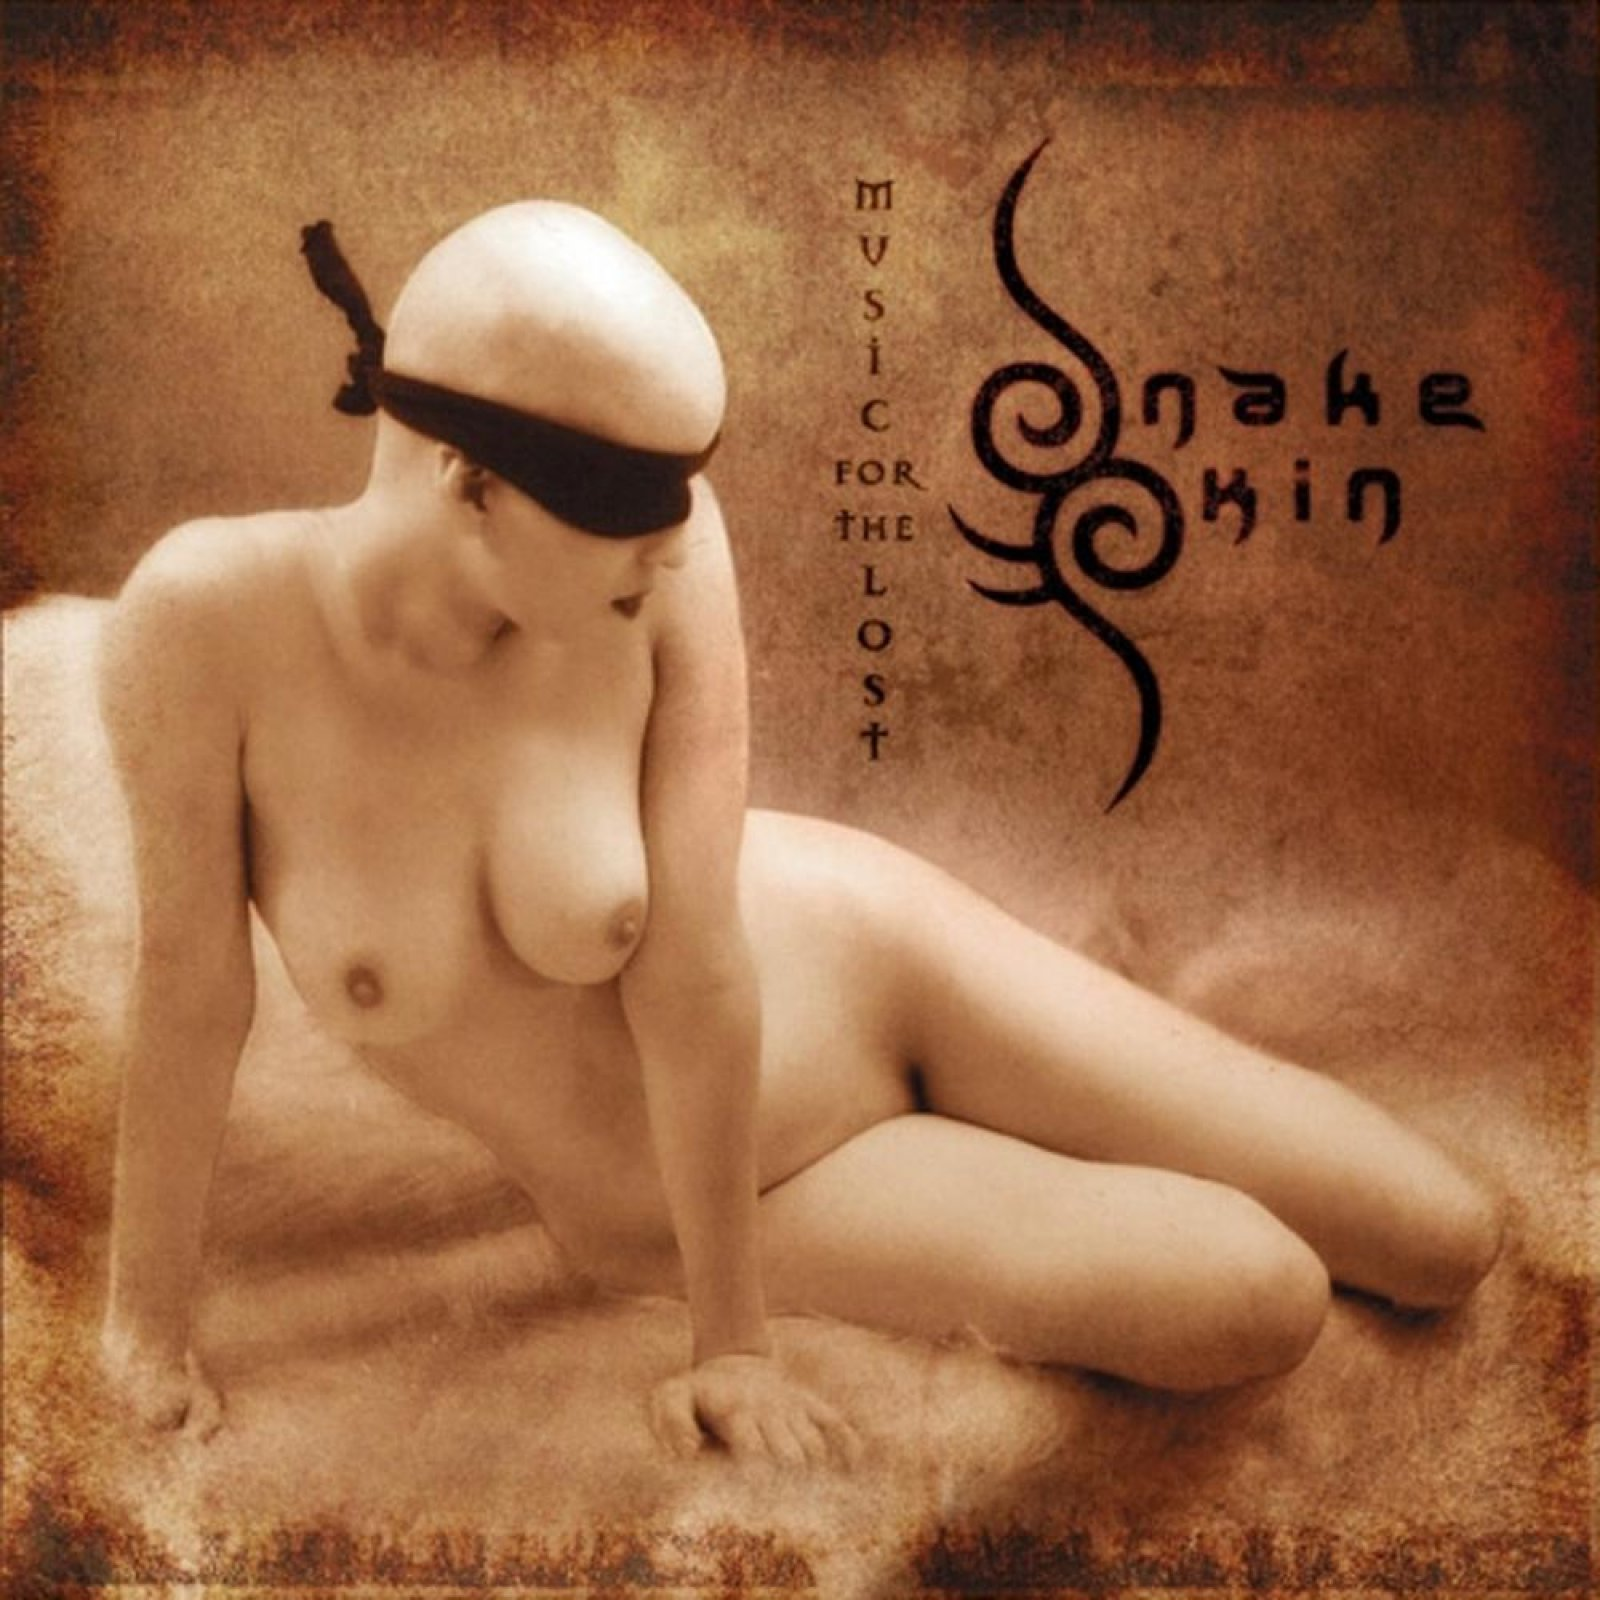 'Music For the Lost' - Snakeskin